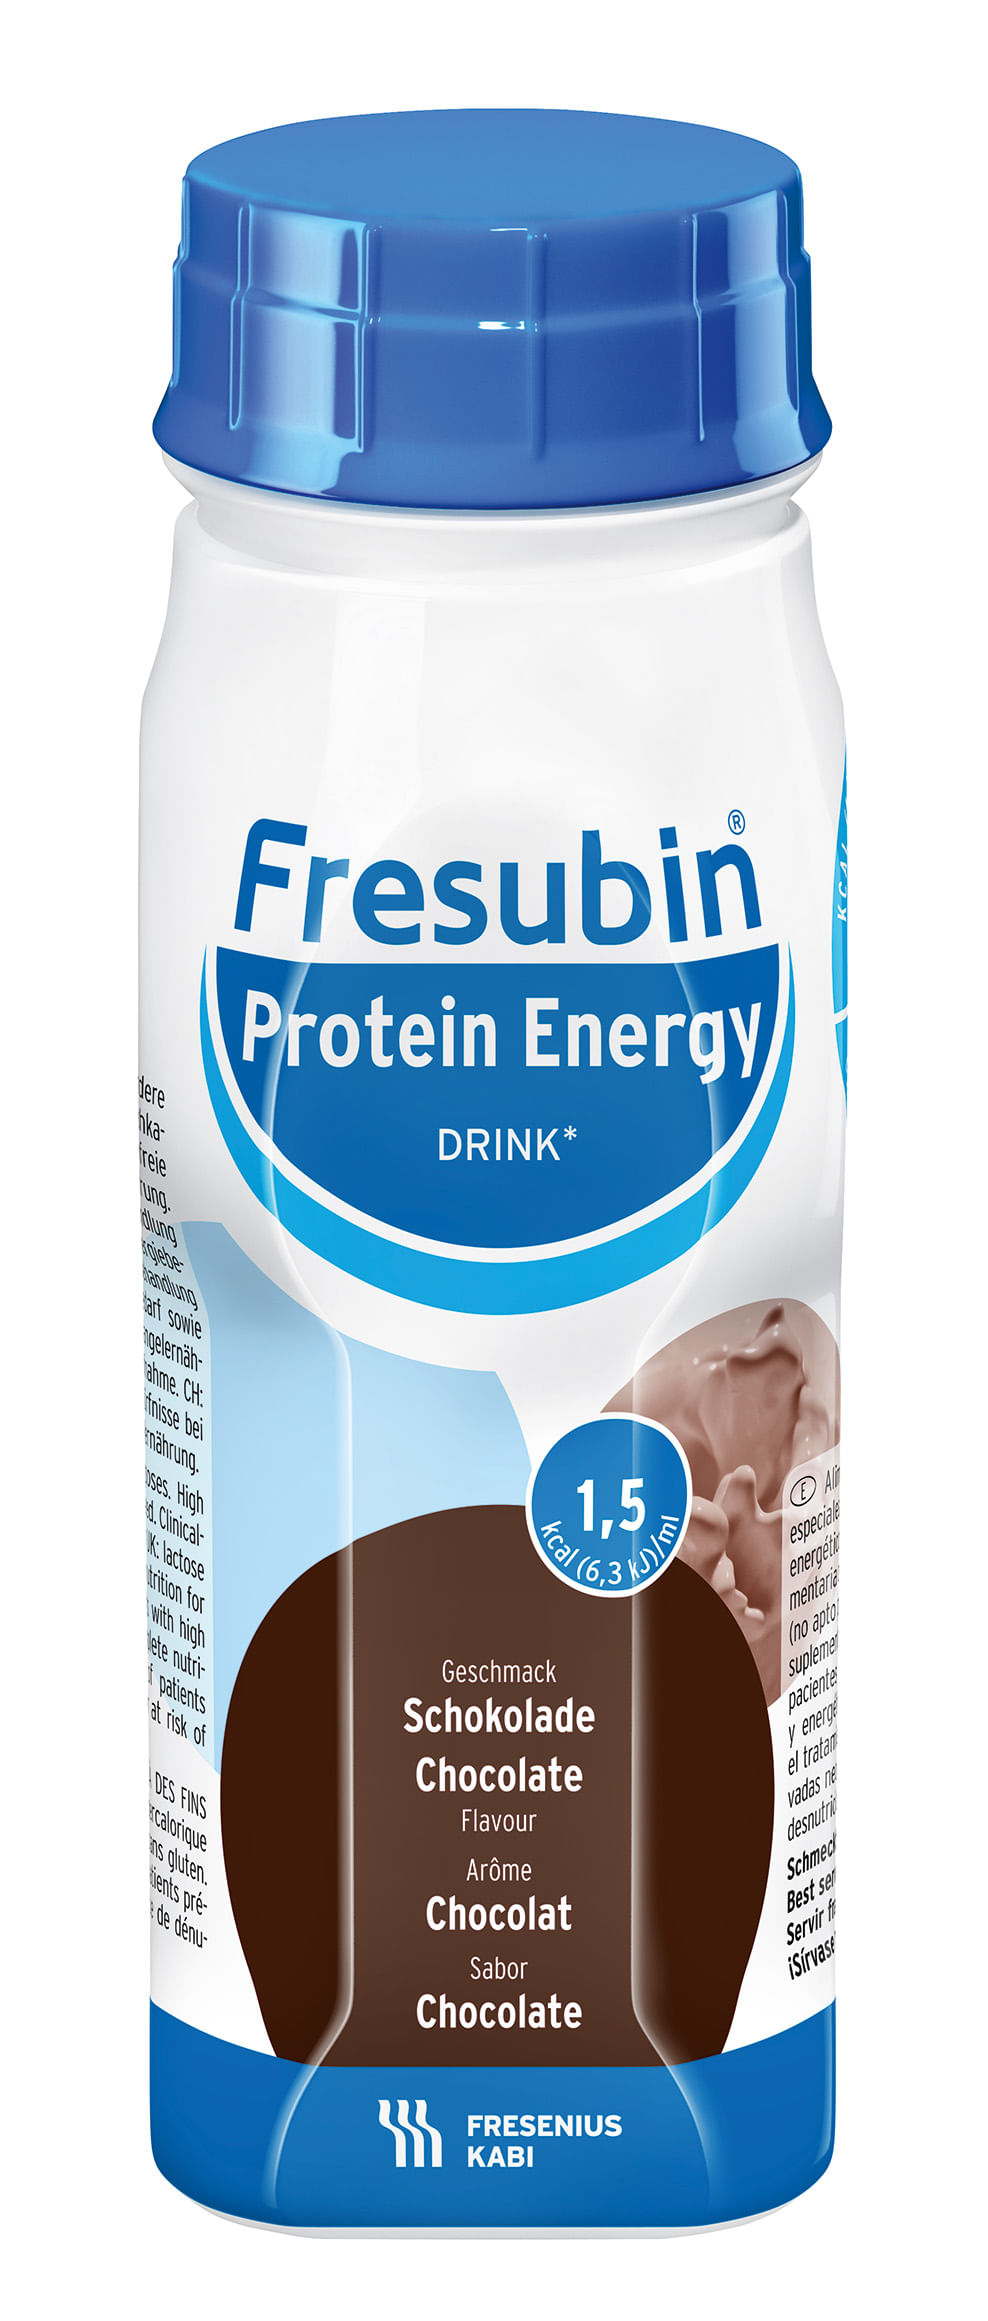 Fresubin_Protein_Energy_Chocolate_EBo_Frontal